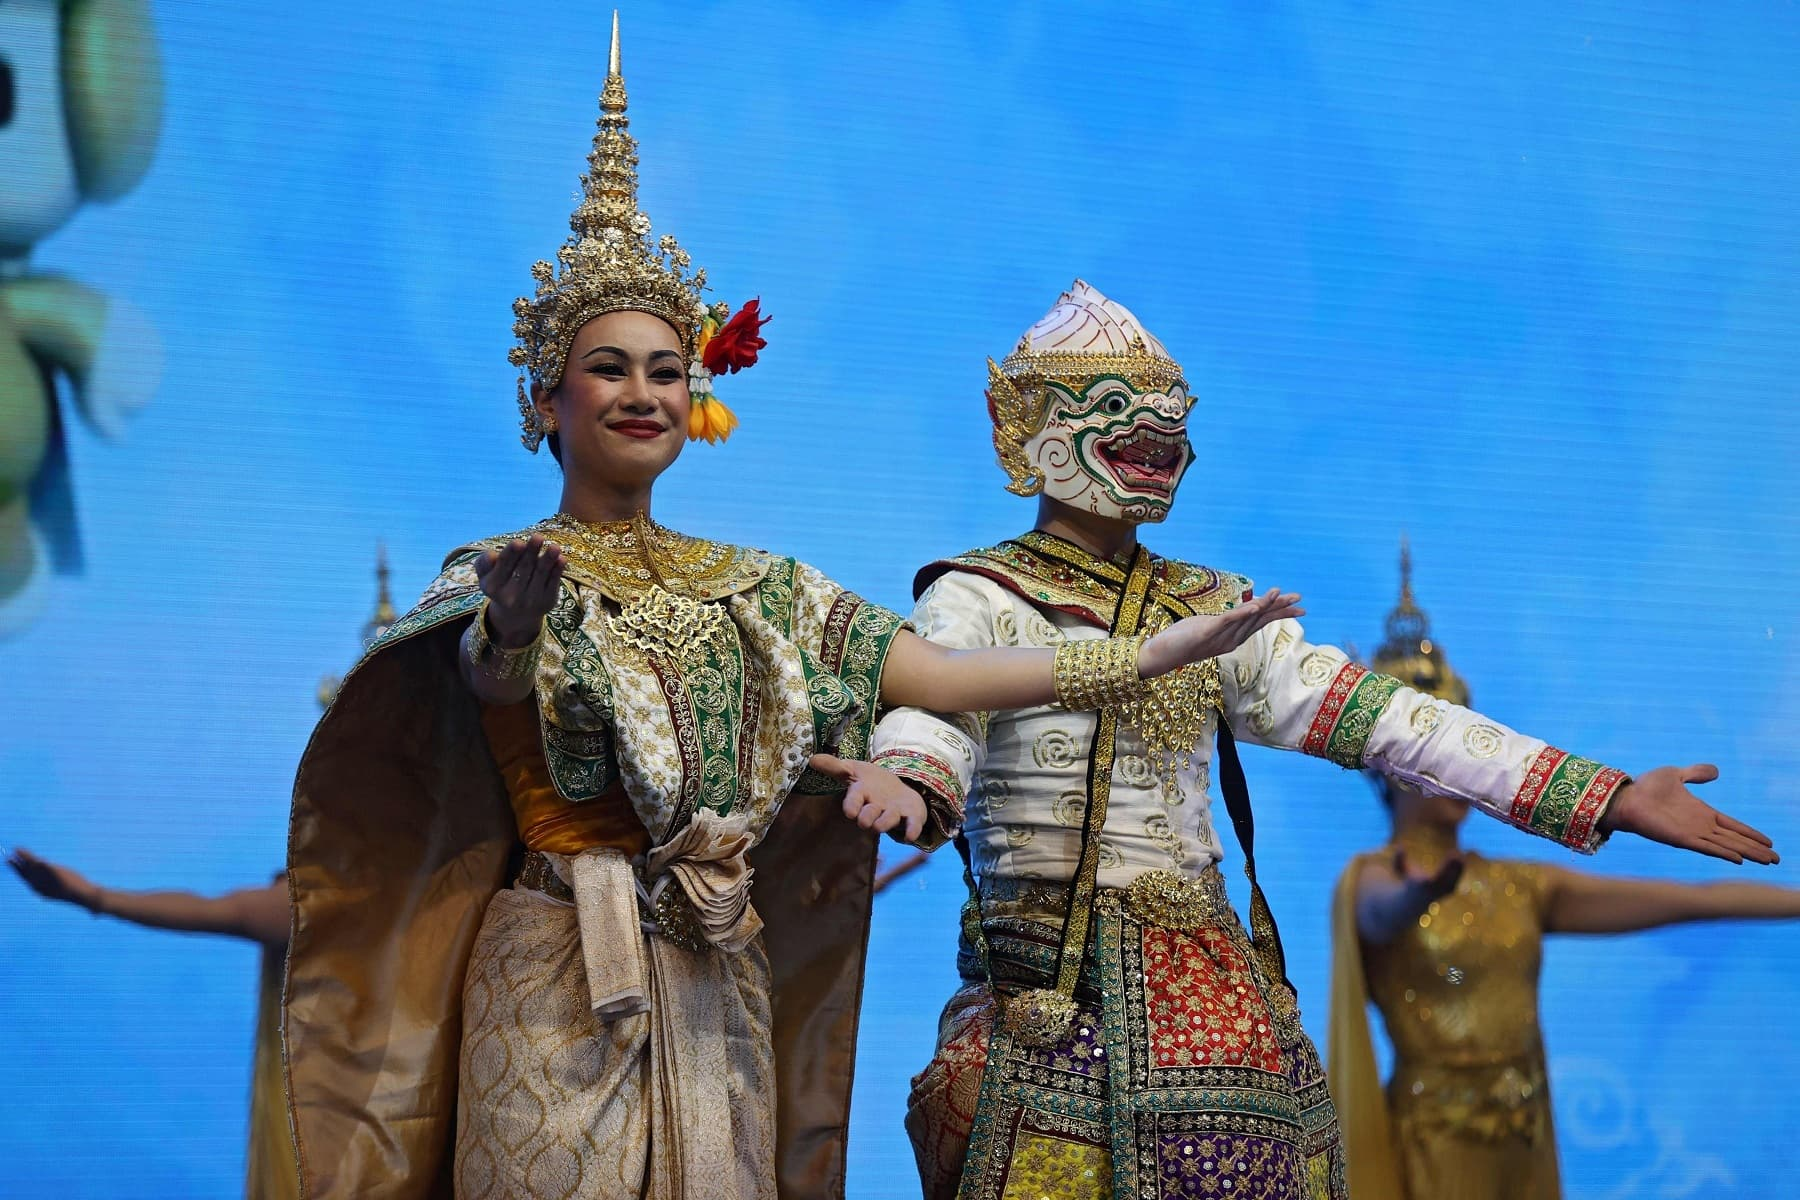 Dancers from Thailand perform in front of the Thai Pavilion at the Expo 2020. — AFP